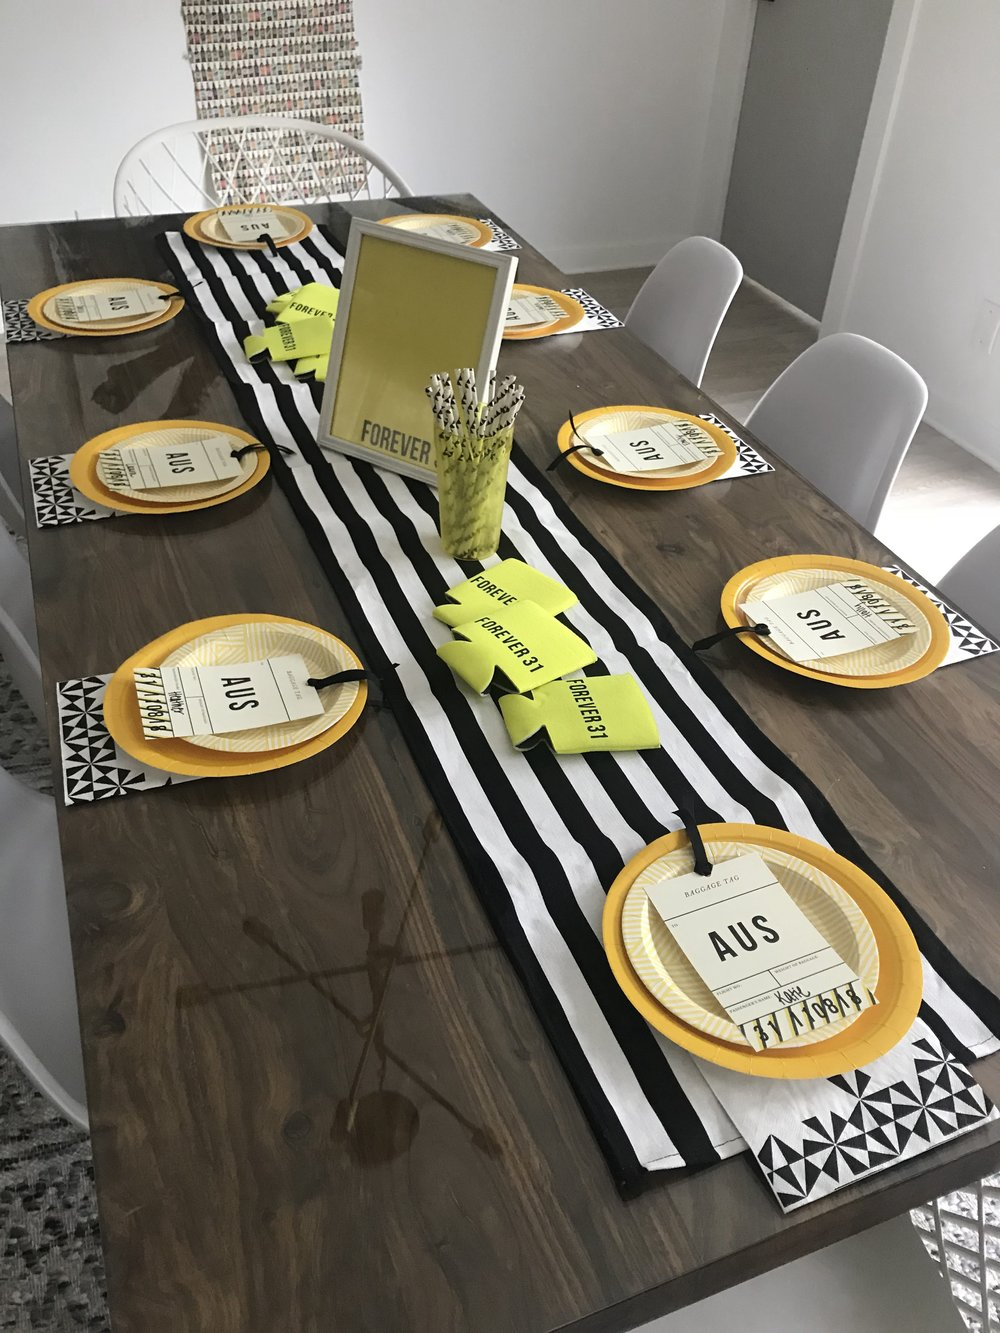 Dress up any Airbnb or vacation rental table by packing a few key items like a black and white table runner.